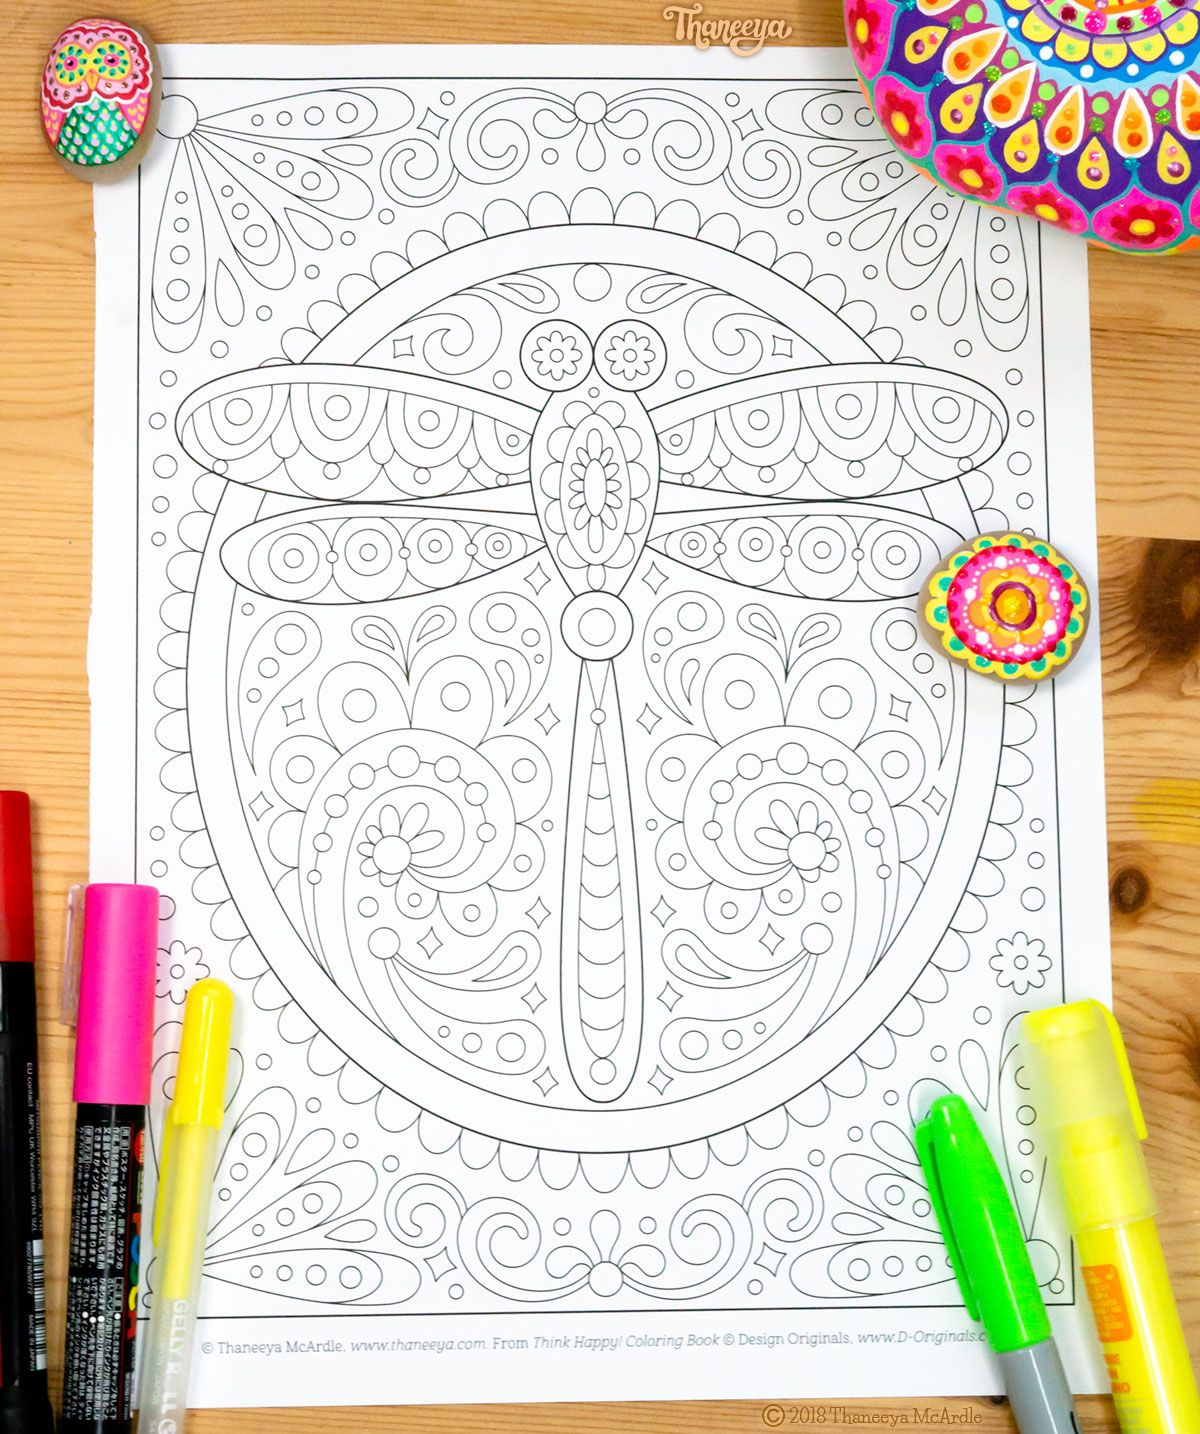 Dragonfly Coloring Page By Thaneeya Mcardle Coloring Books Coloring Pages Free Coloring Pages